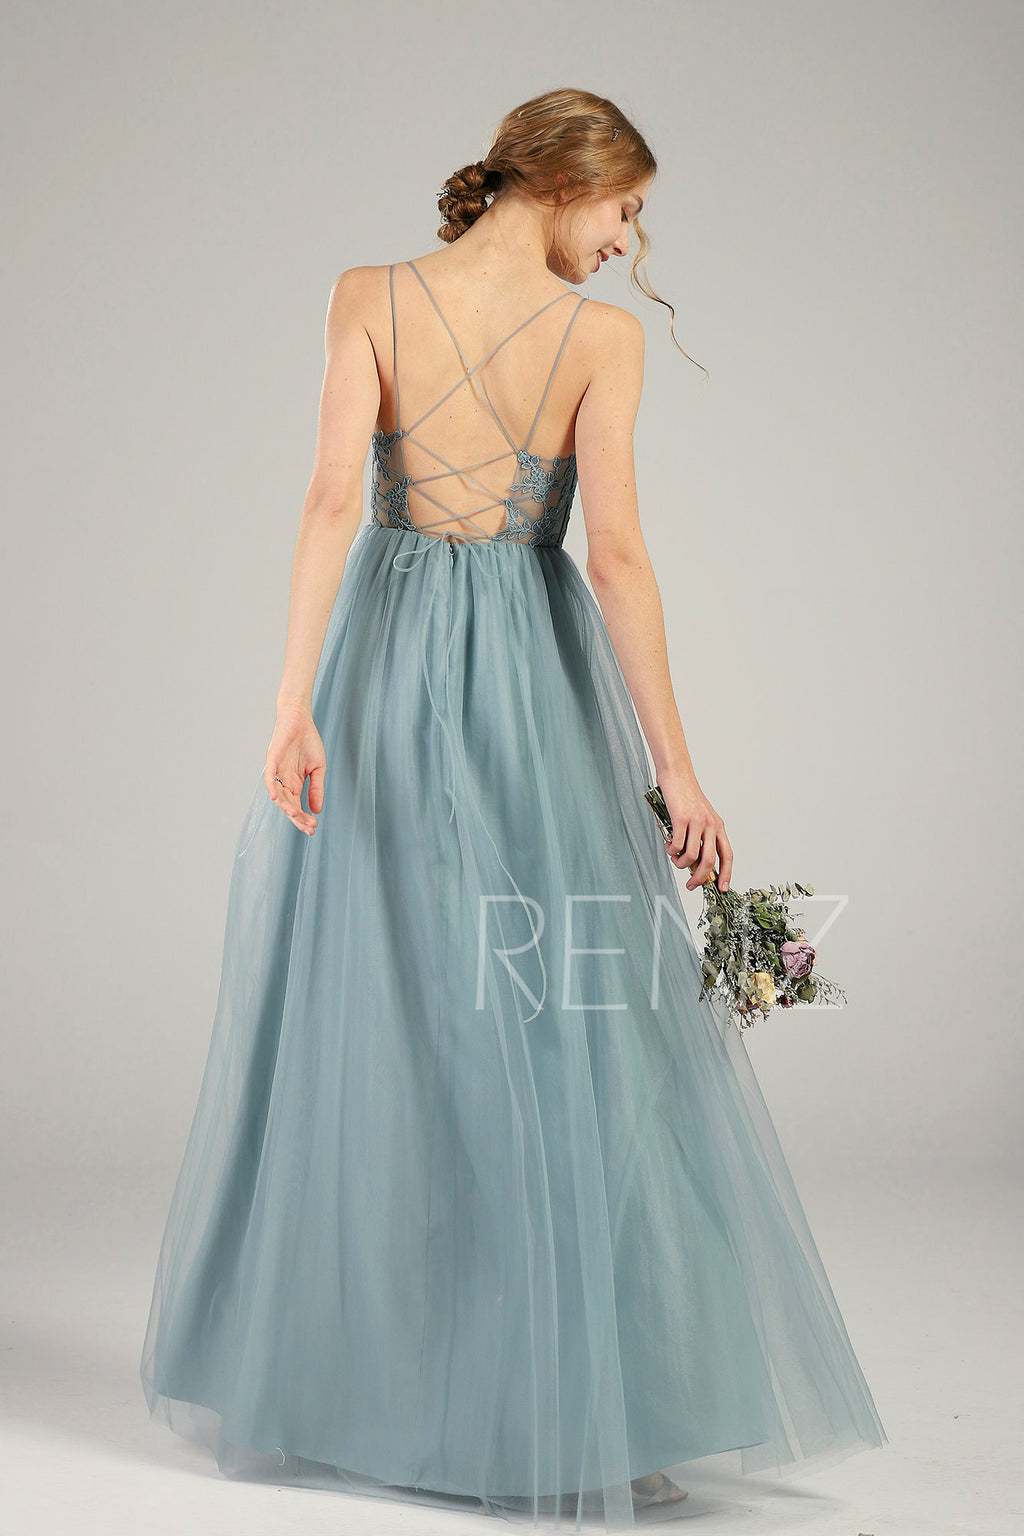 Prom Dress Dusty Blue Tulle Bridesmaid Dress V Neck Wedding Dress Spaghetti Strap Party Dress Illusion Lace-up Back A-line Maxi Dress(HS736)